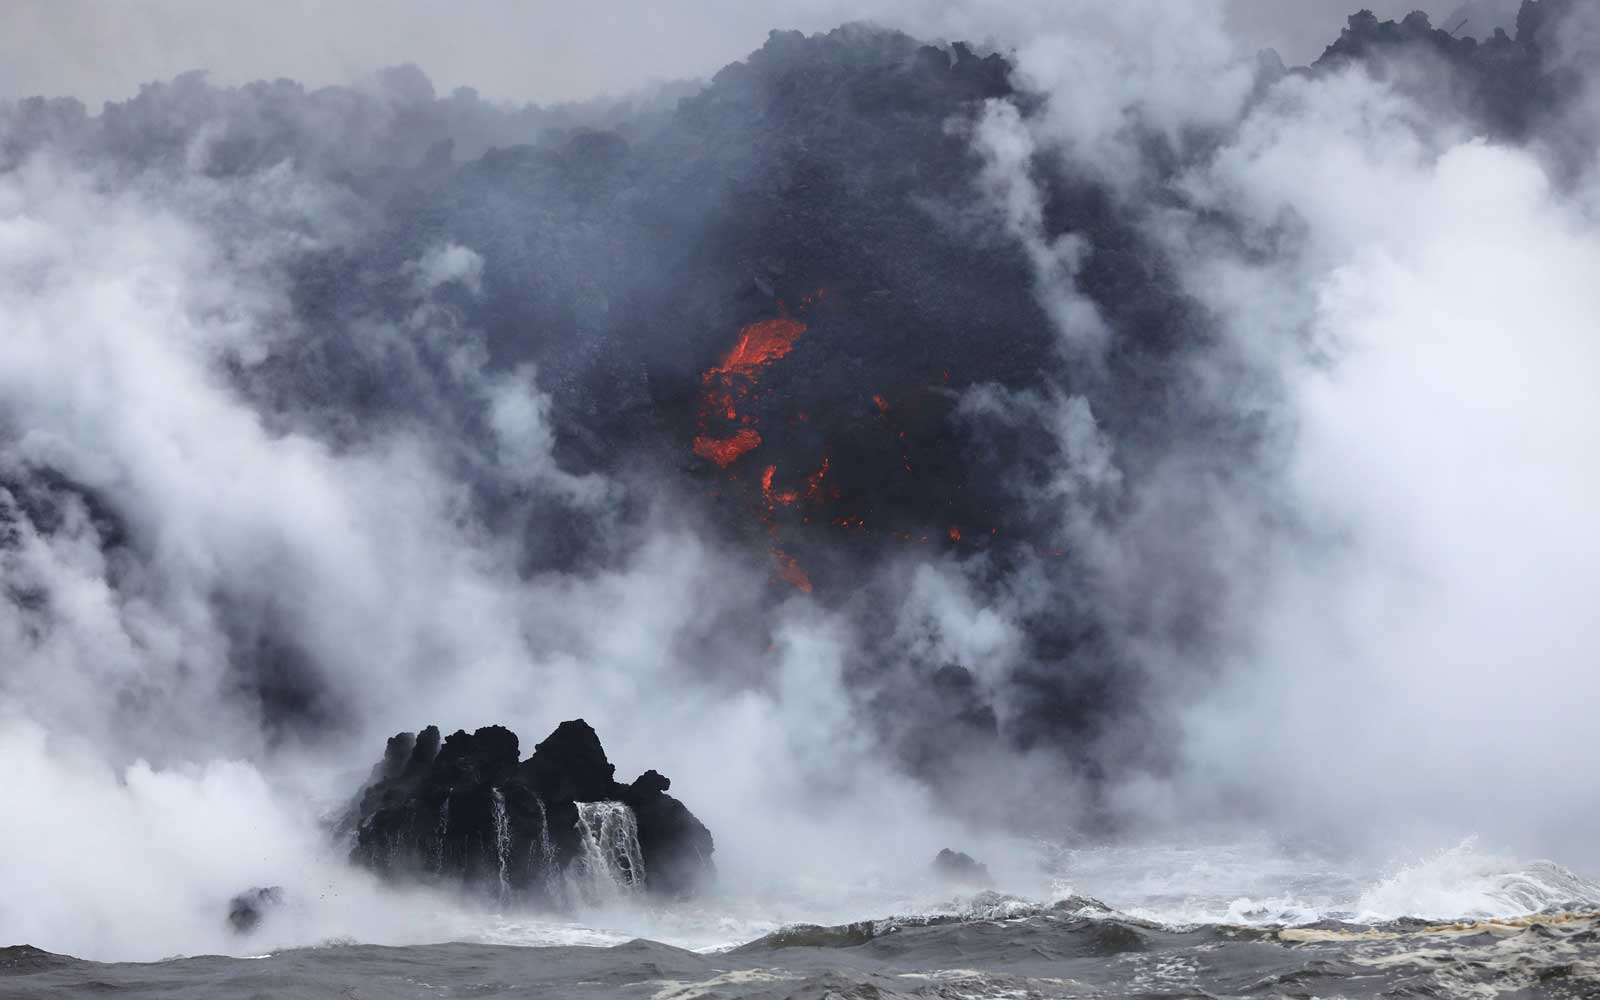 Kilauea volcano grows more hazardous as spewing lava causes first major injury